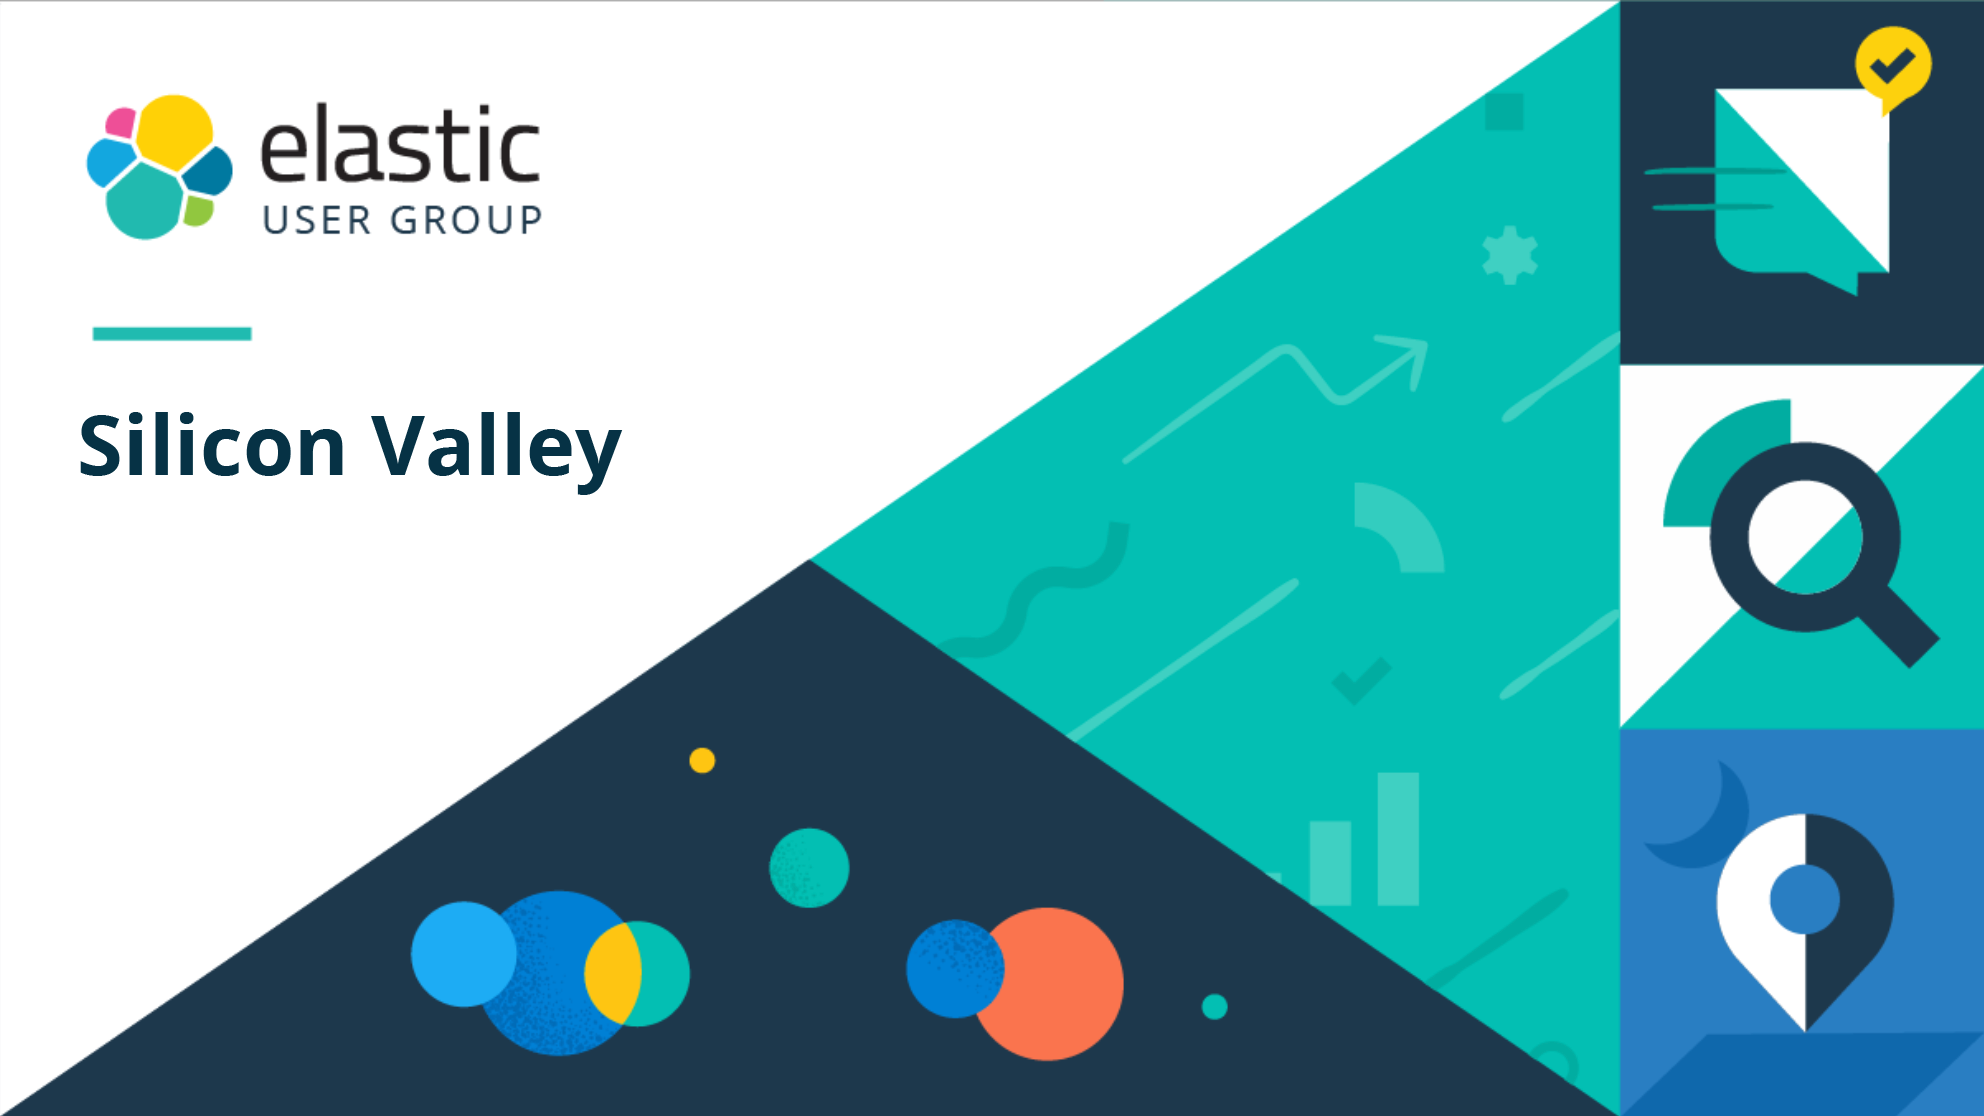 Elastic Silicon Valley User Group